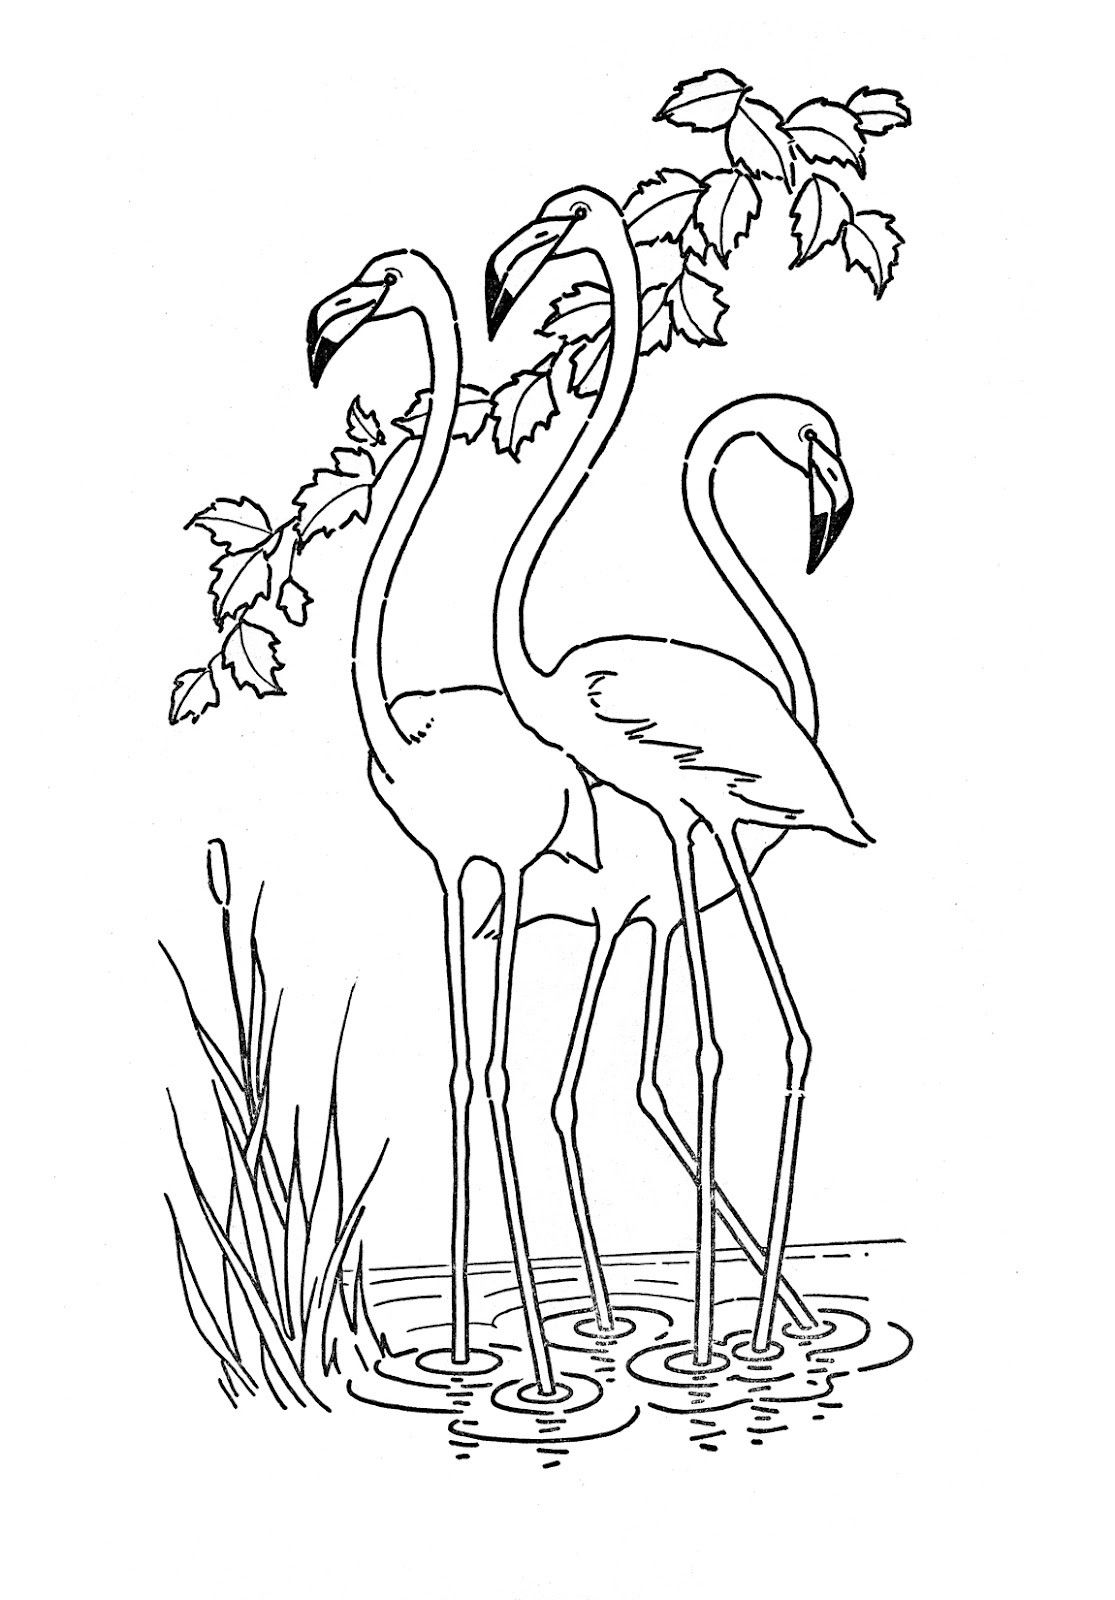 nature coloring pages for kids printable more pages to color flamingo coloring page fairy. Black Bedroom Furniture Sets. Home Design Ideas